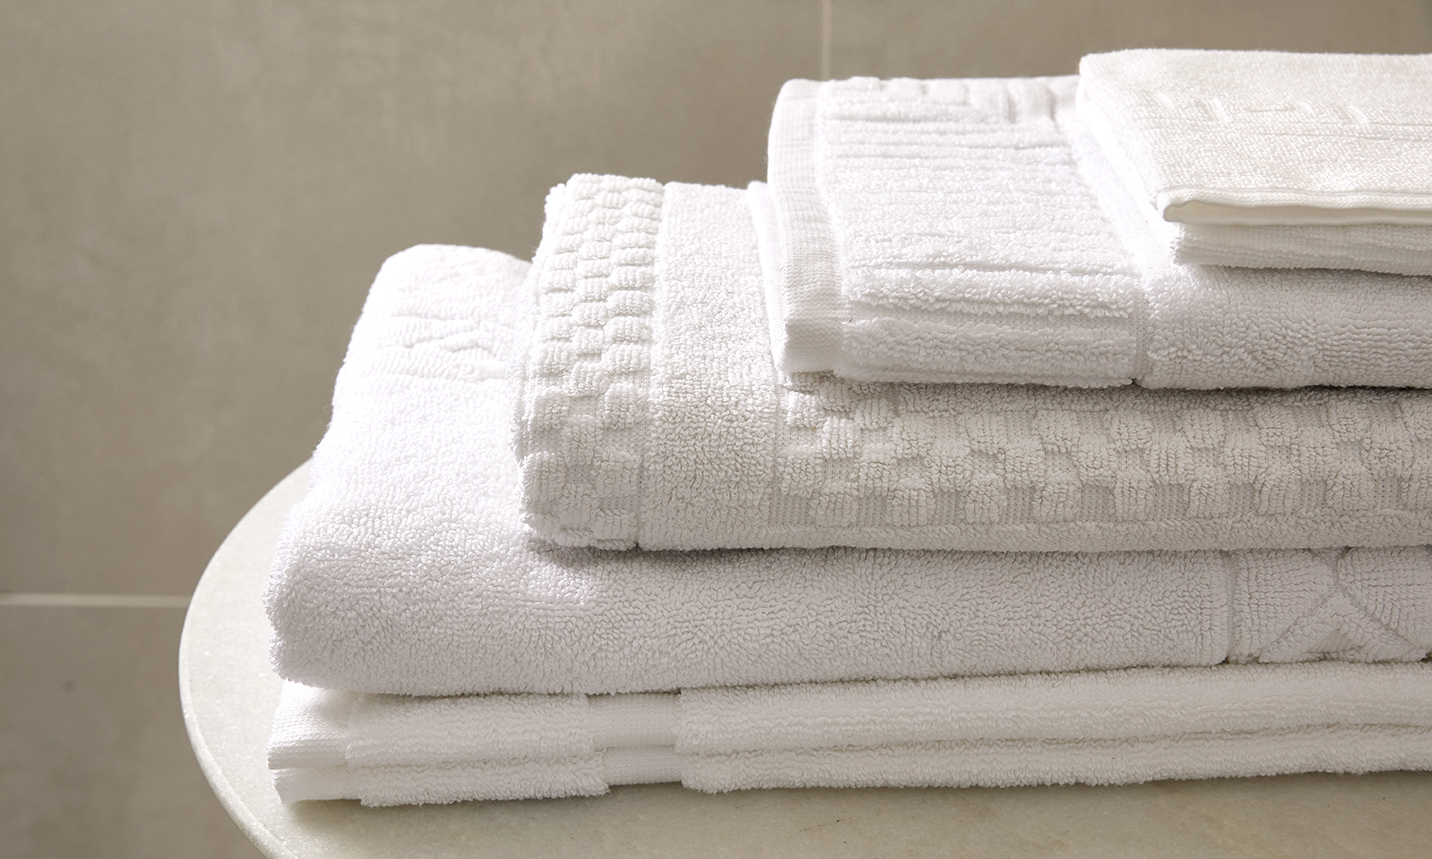 Bath Mats  Soft and absorbent bath mats that can also be custom made to perfectly match all of your other bath linens.    Learn More...